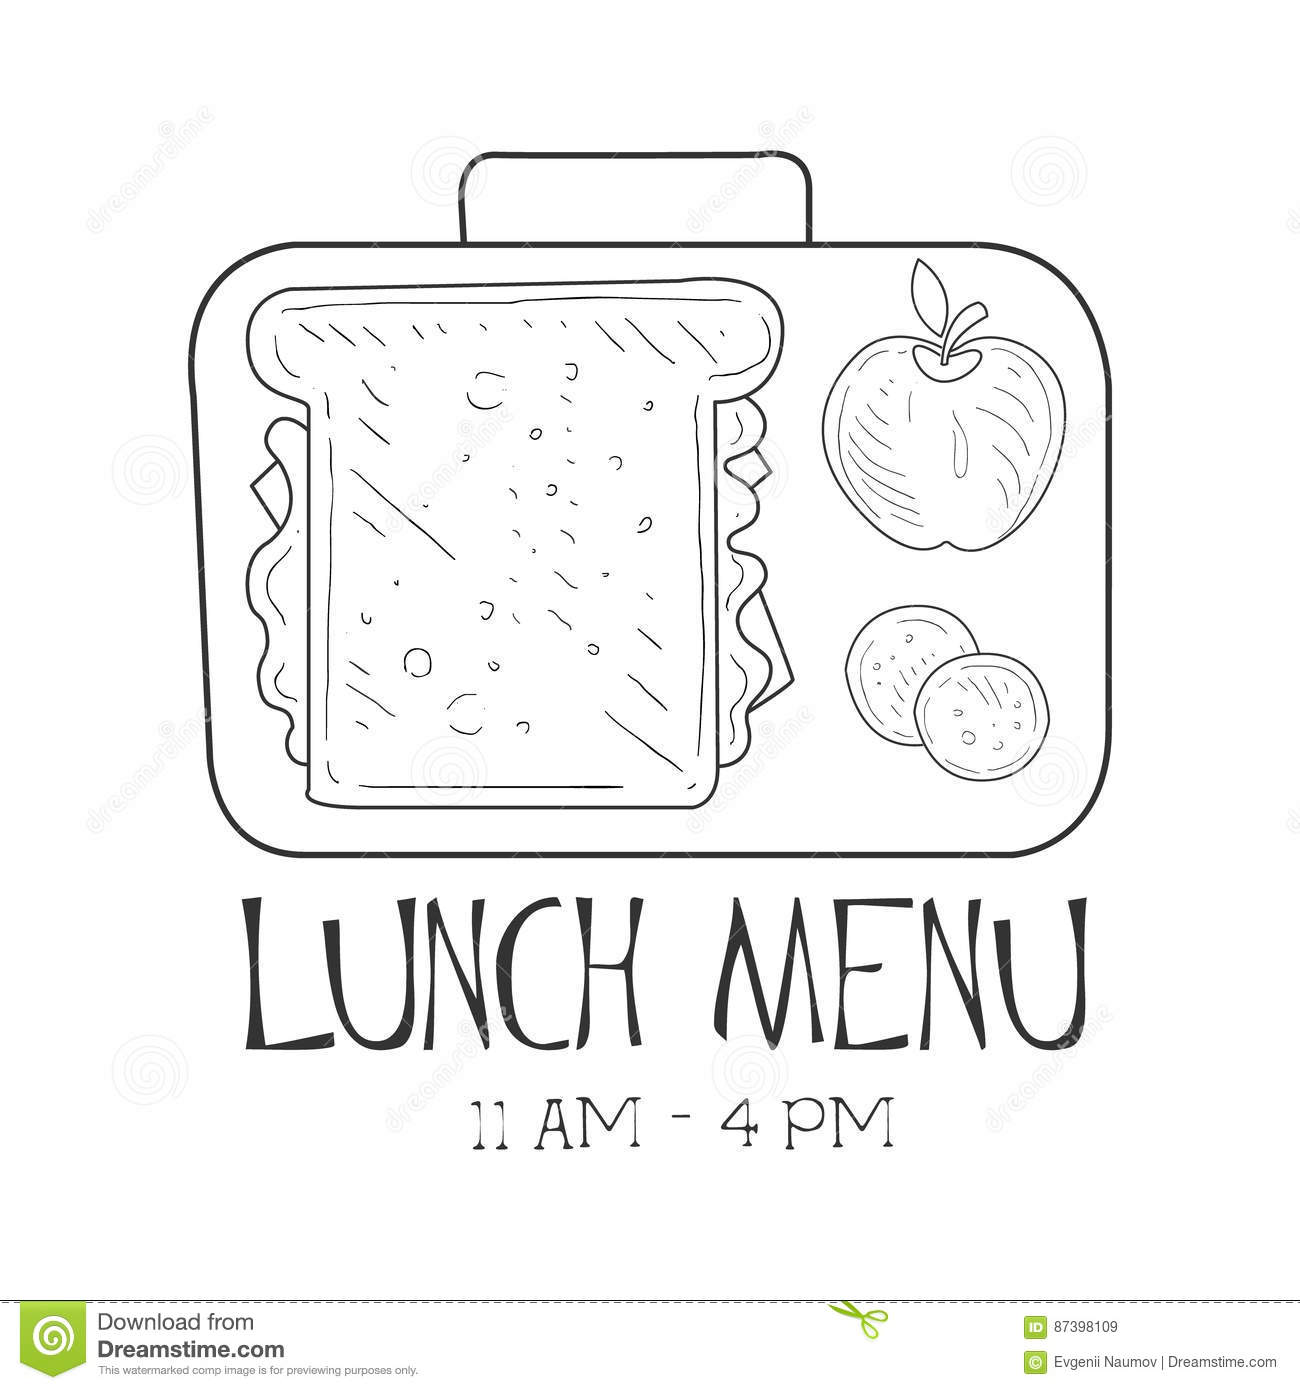 Lunch menu template stock vector image 43191846 school lunchbox cafe lunch menu promo sign in sketch style design label black and white pronofoot35fo Gallery